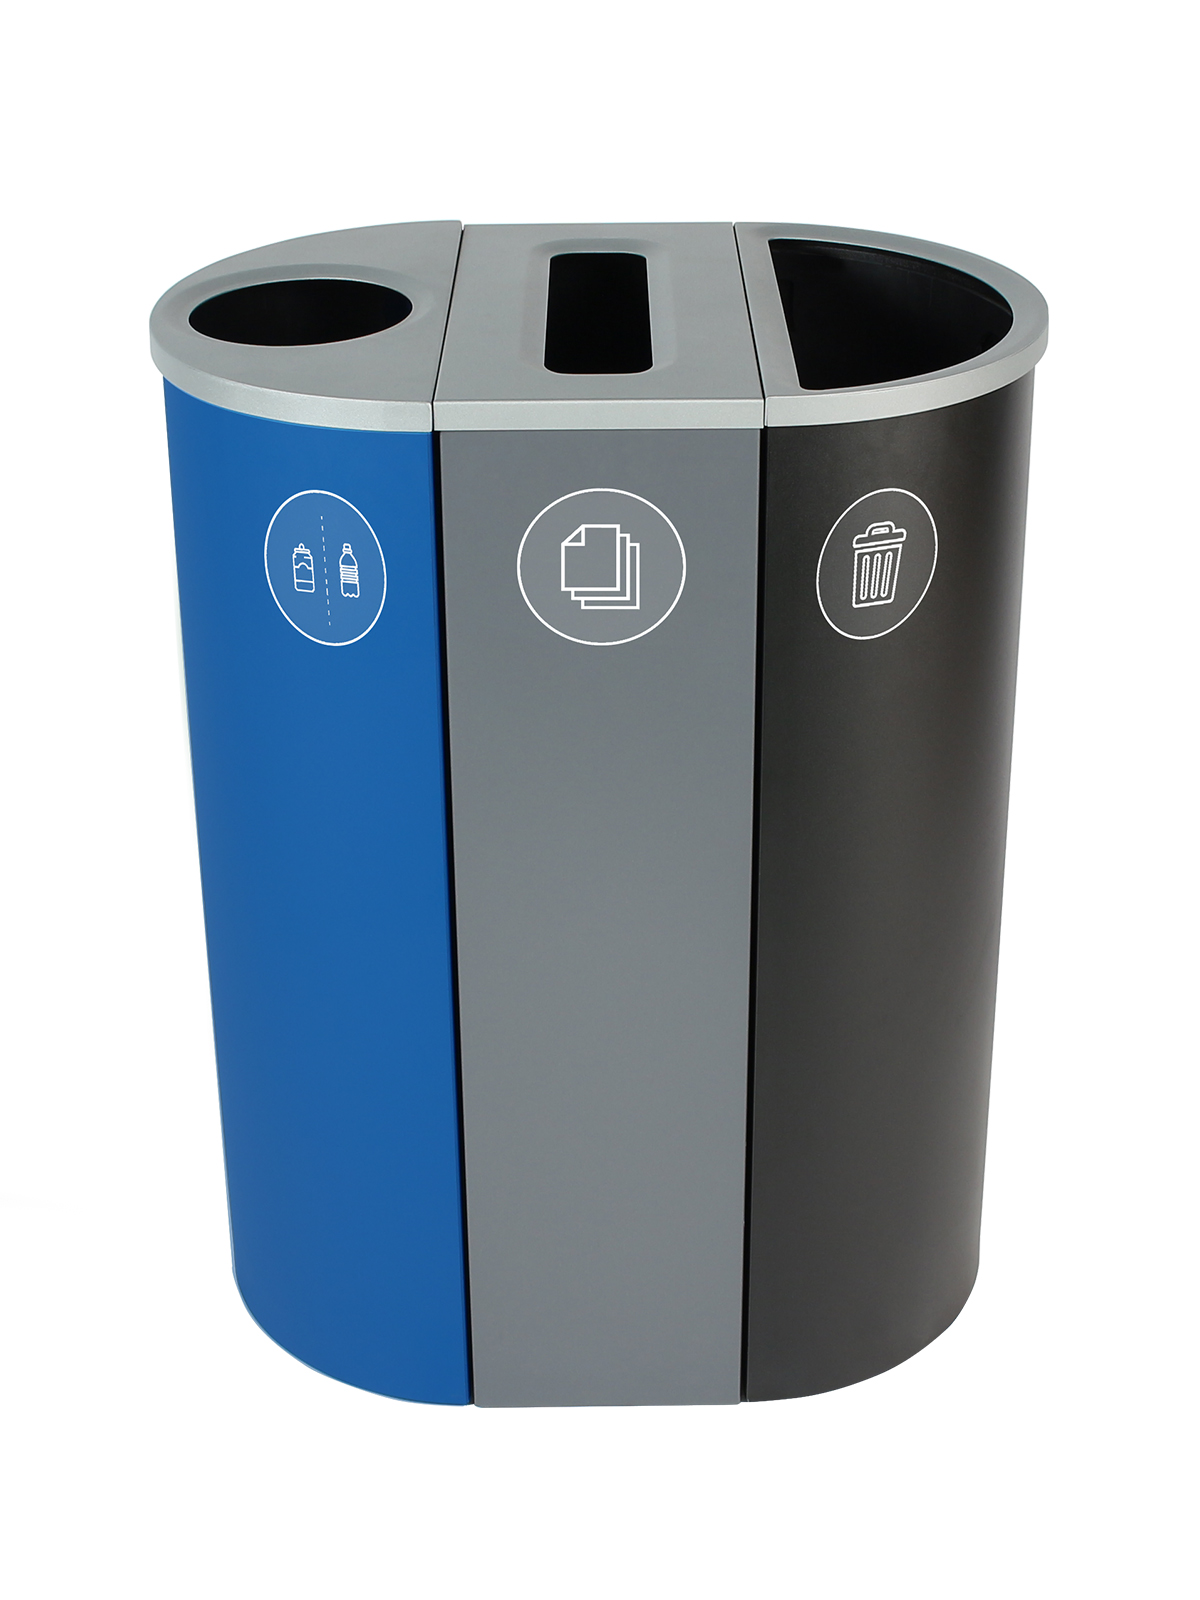 SPECTRUM - Triple - Cans & Bottles-Paper-Waste - Circle-Slot-Full - Blue-Grey-Black